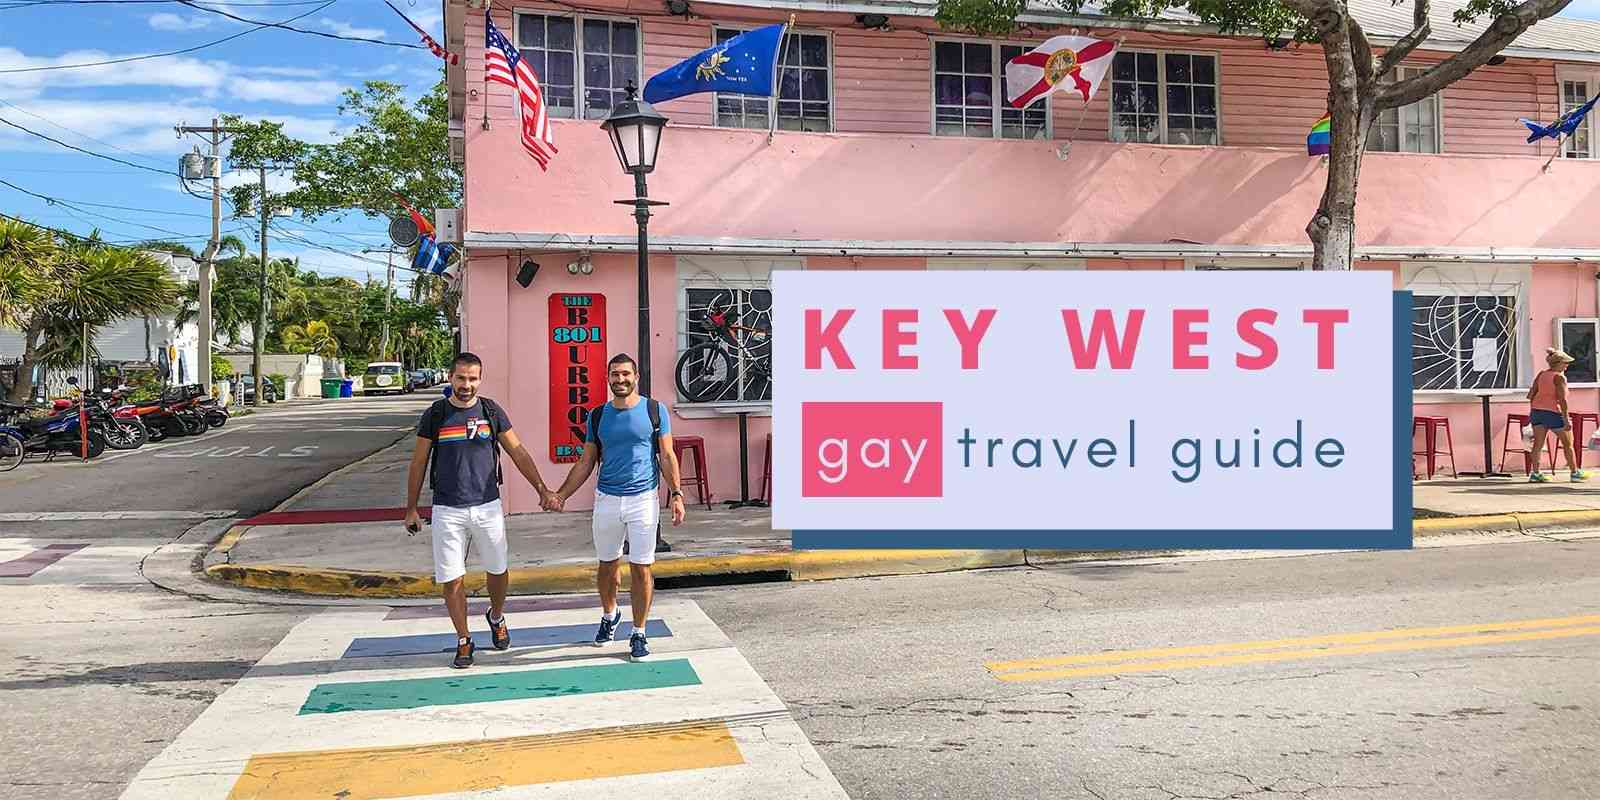 Our complete gay travel guide to Key west with the best gay bars and clubs to party